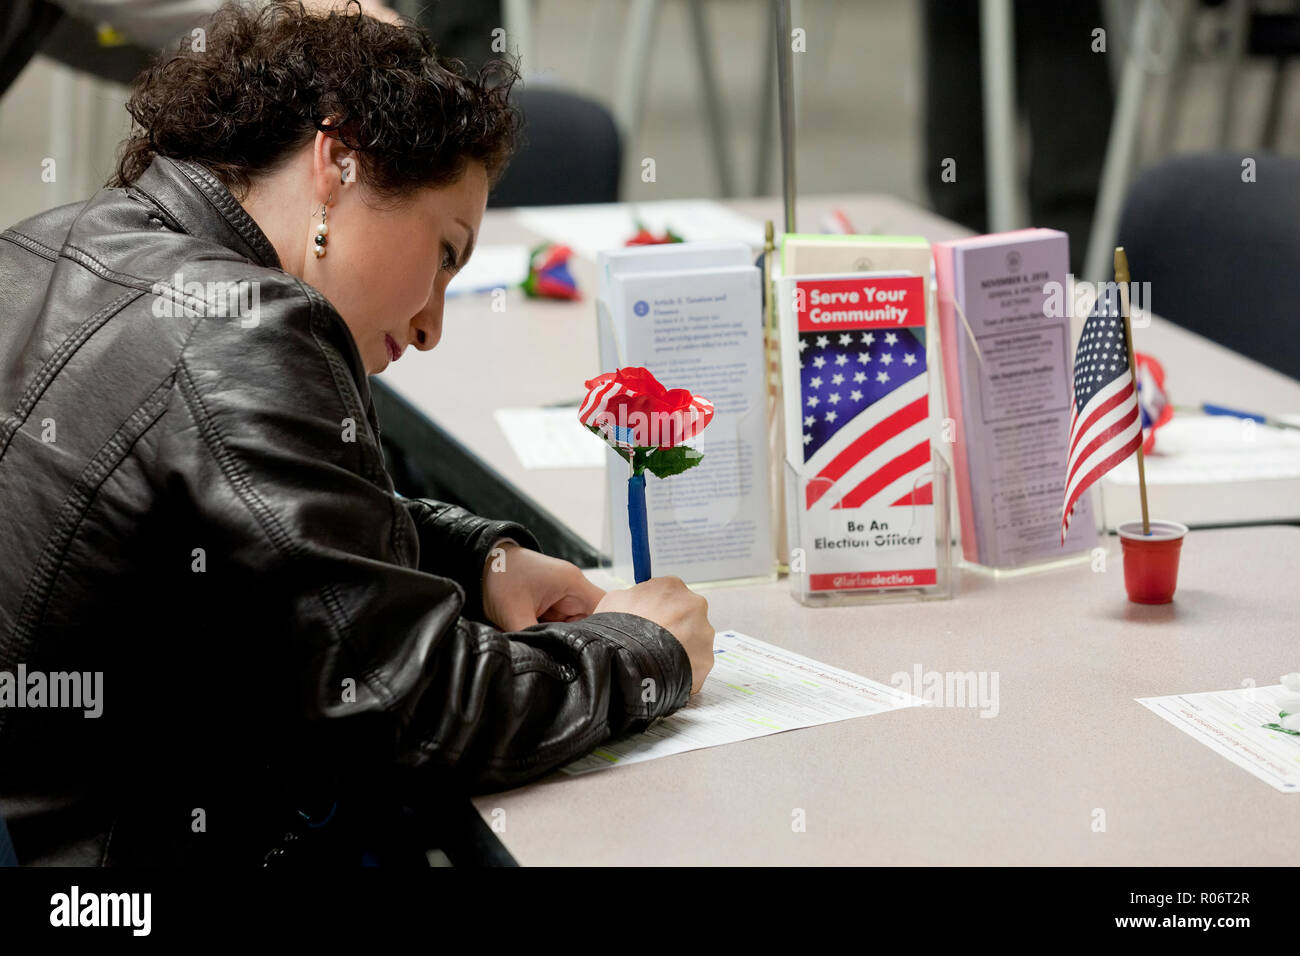 Woman fills out absentee vote application during 2018 midterm elections - Fairfax County, Virginia USA - Stock Image